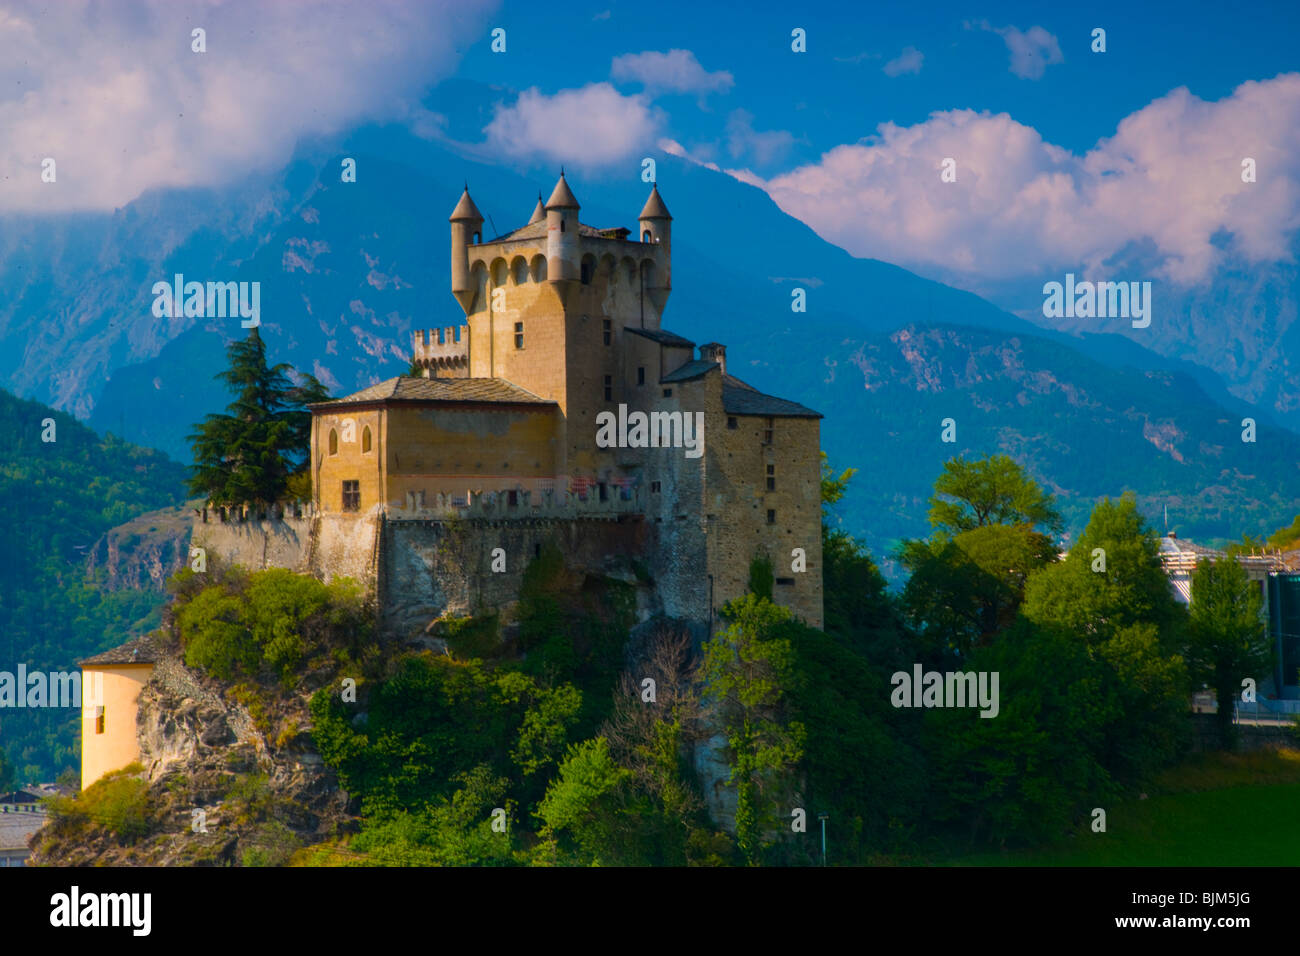 Castle in Val D' Aosta, Italian Alps, Italy, Saint Pierre Castle from 12th century, Mountains of the Mount Blanc, - Stock Image